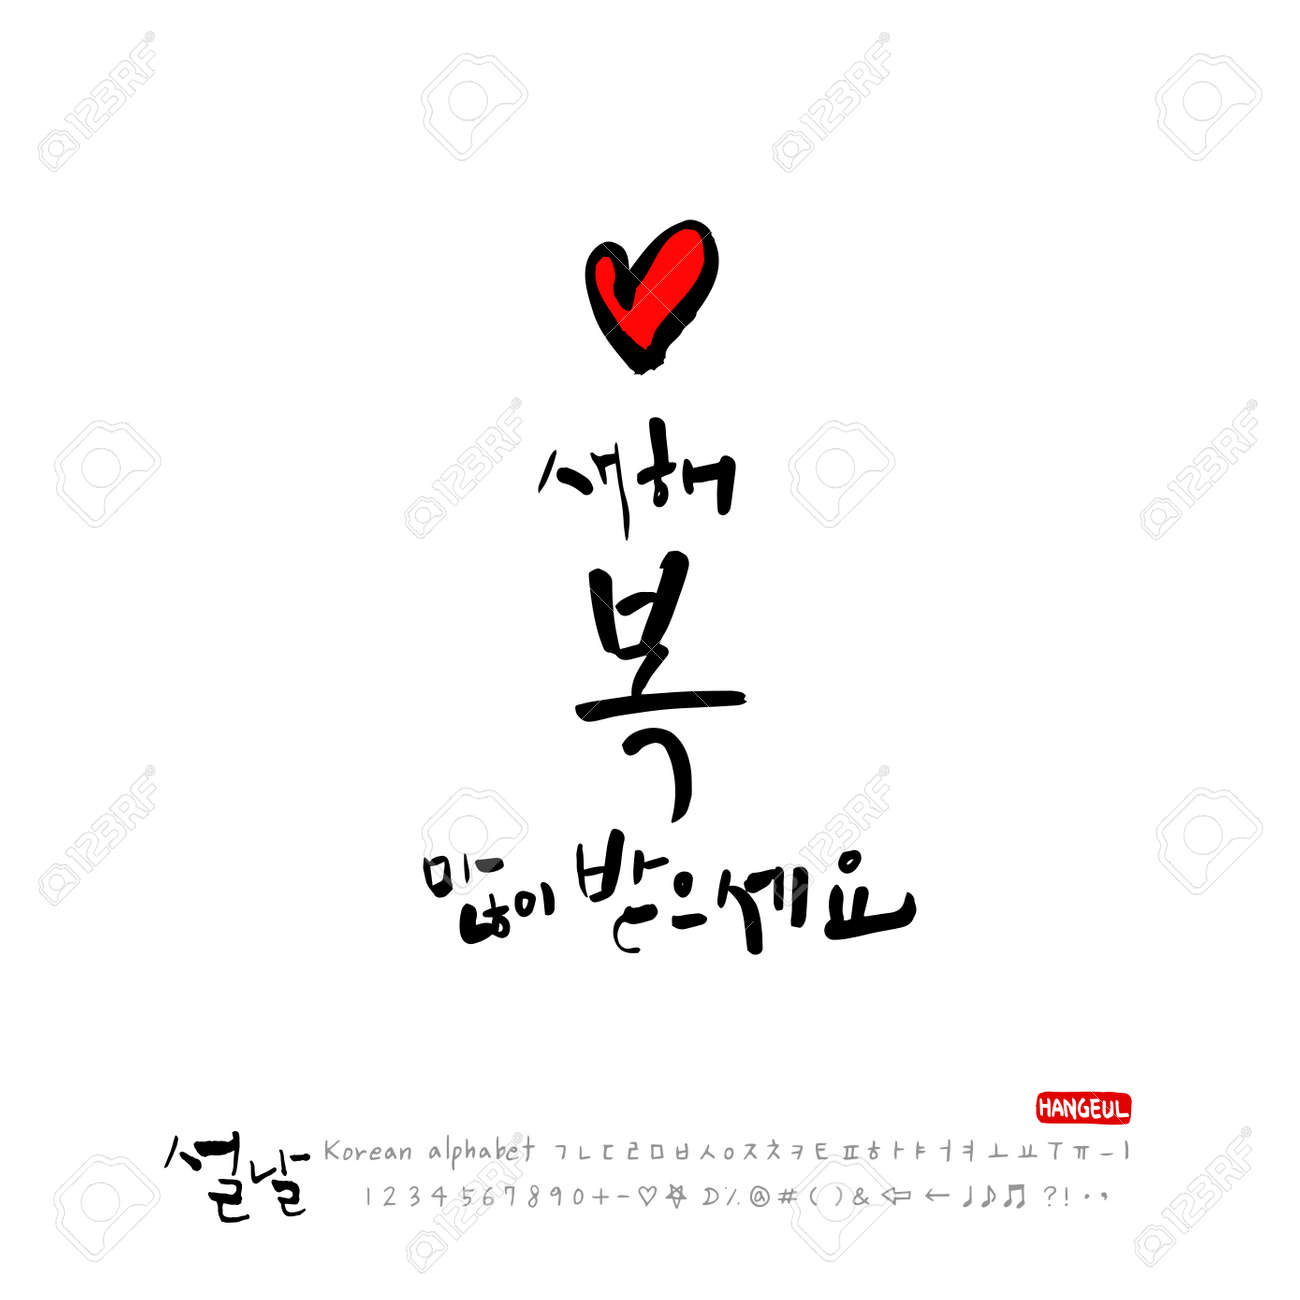 handwritten korean alphabet calligraphy korean holidays new years day greeting happy new